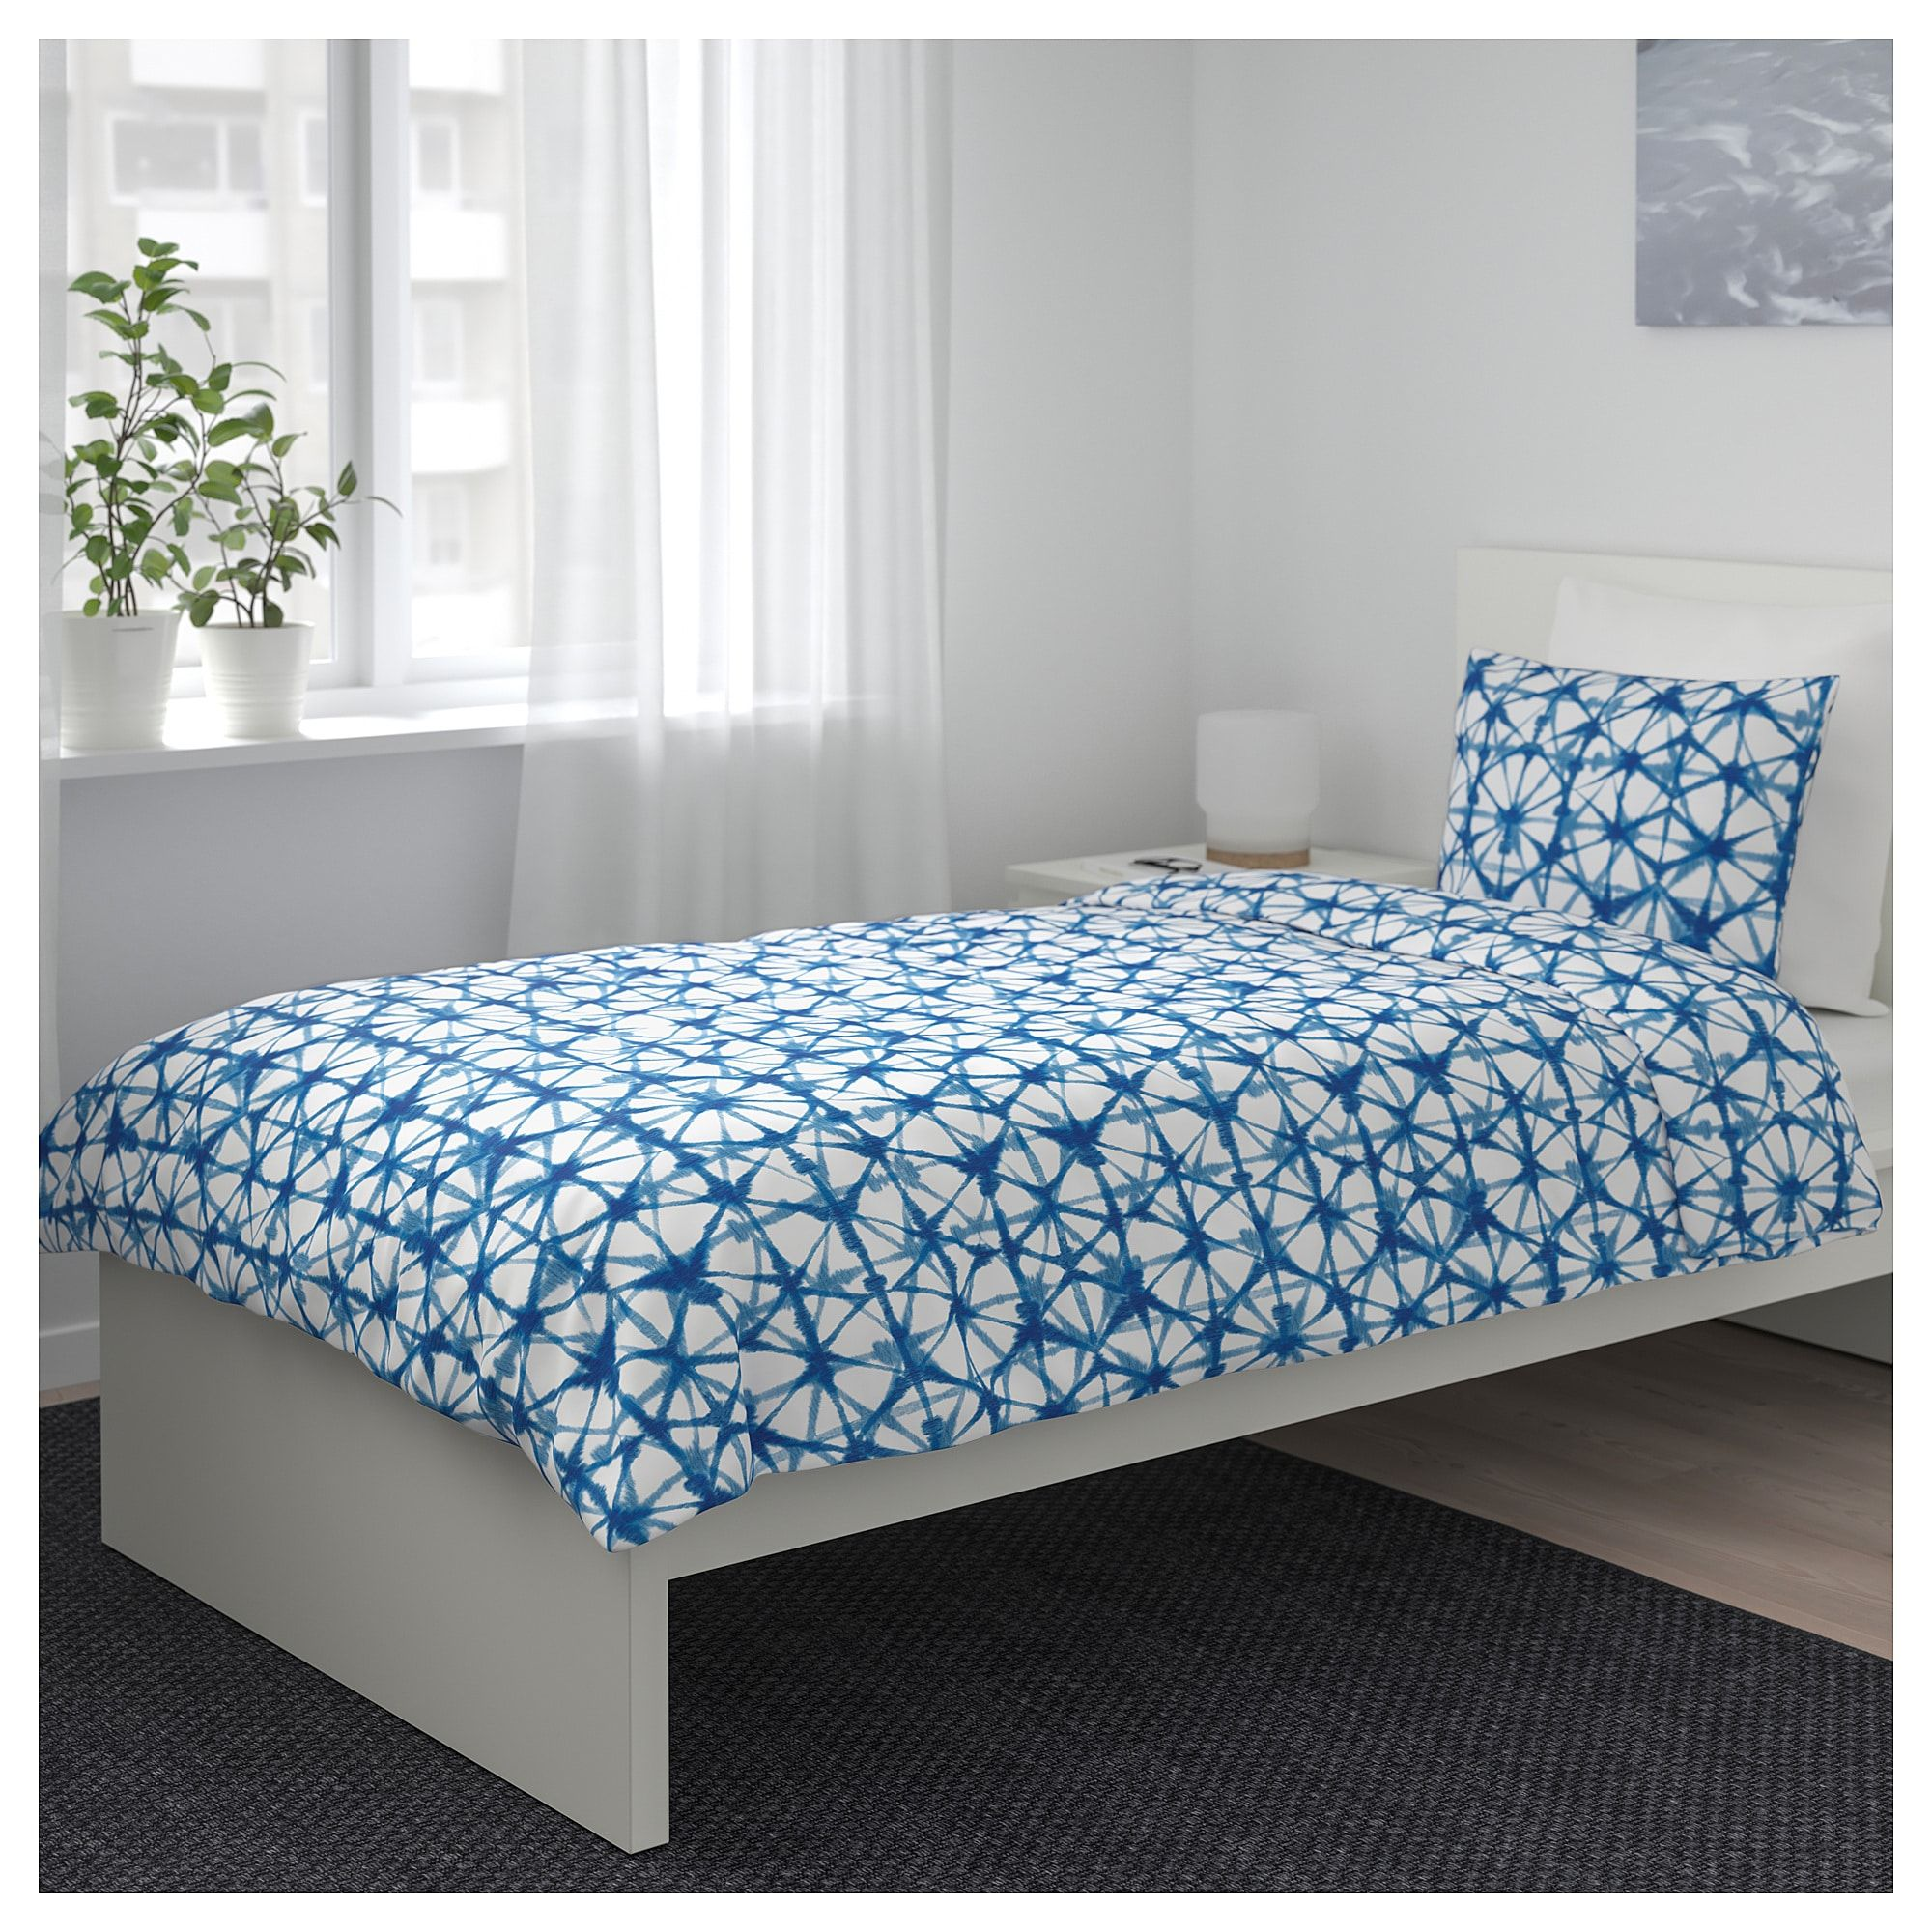 IKEA STJÄRNFLOCKA Duvet cover and pillowcase(s) white